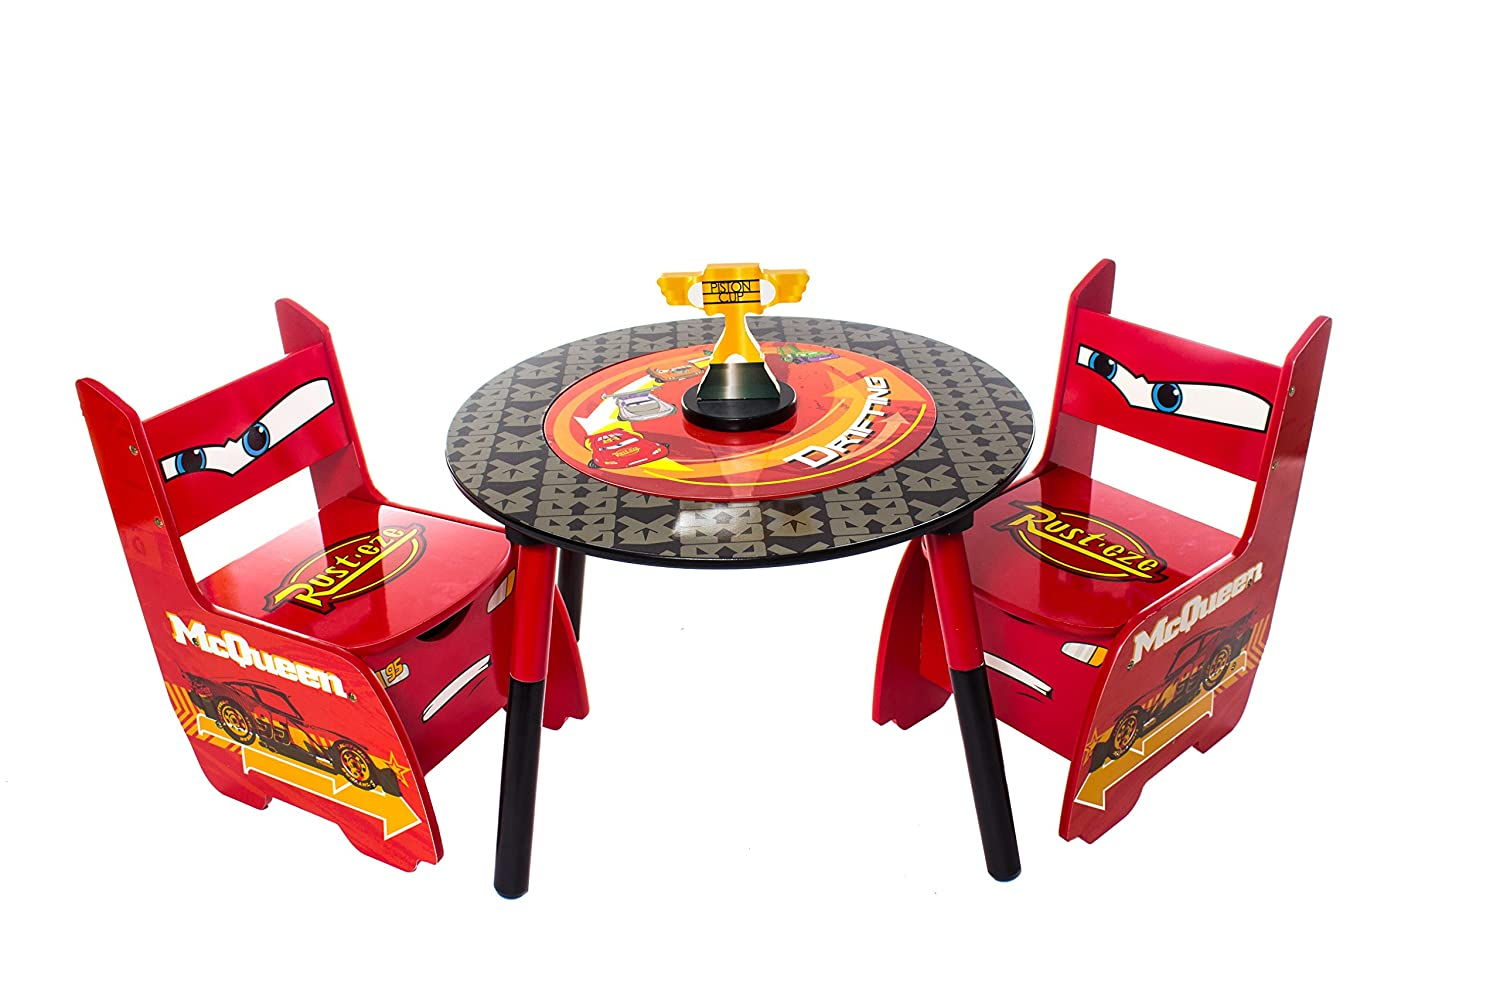 Disney Cars Lightning McQueen Childrens Wooden Table And Two Chairs Set    Kids Bedroom / Playroom: Amazon.co.uk: Kitchen U0026 Home